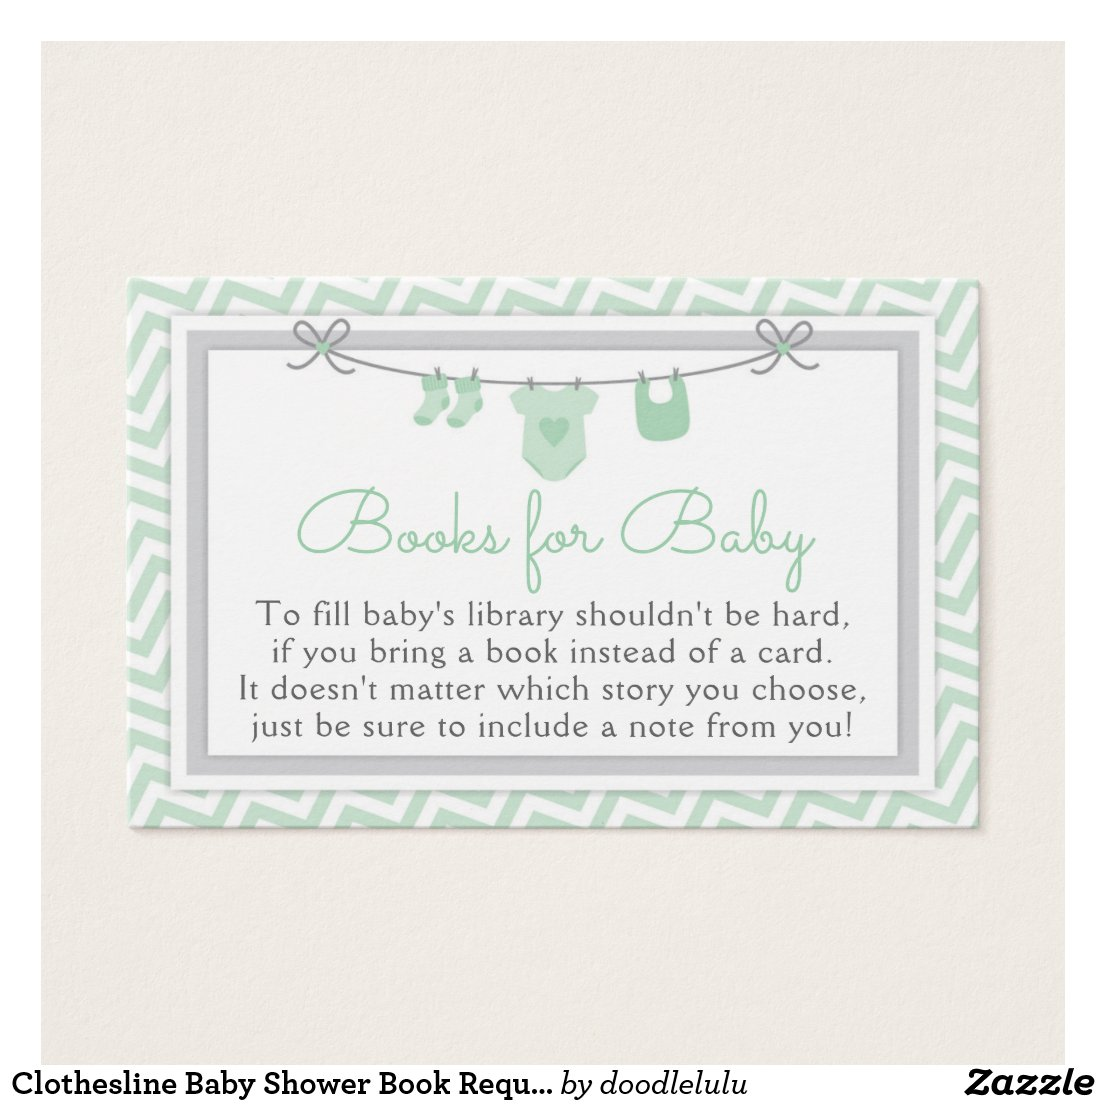 Clothesline Baby Shower Book Request Card green